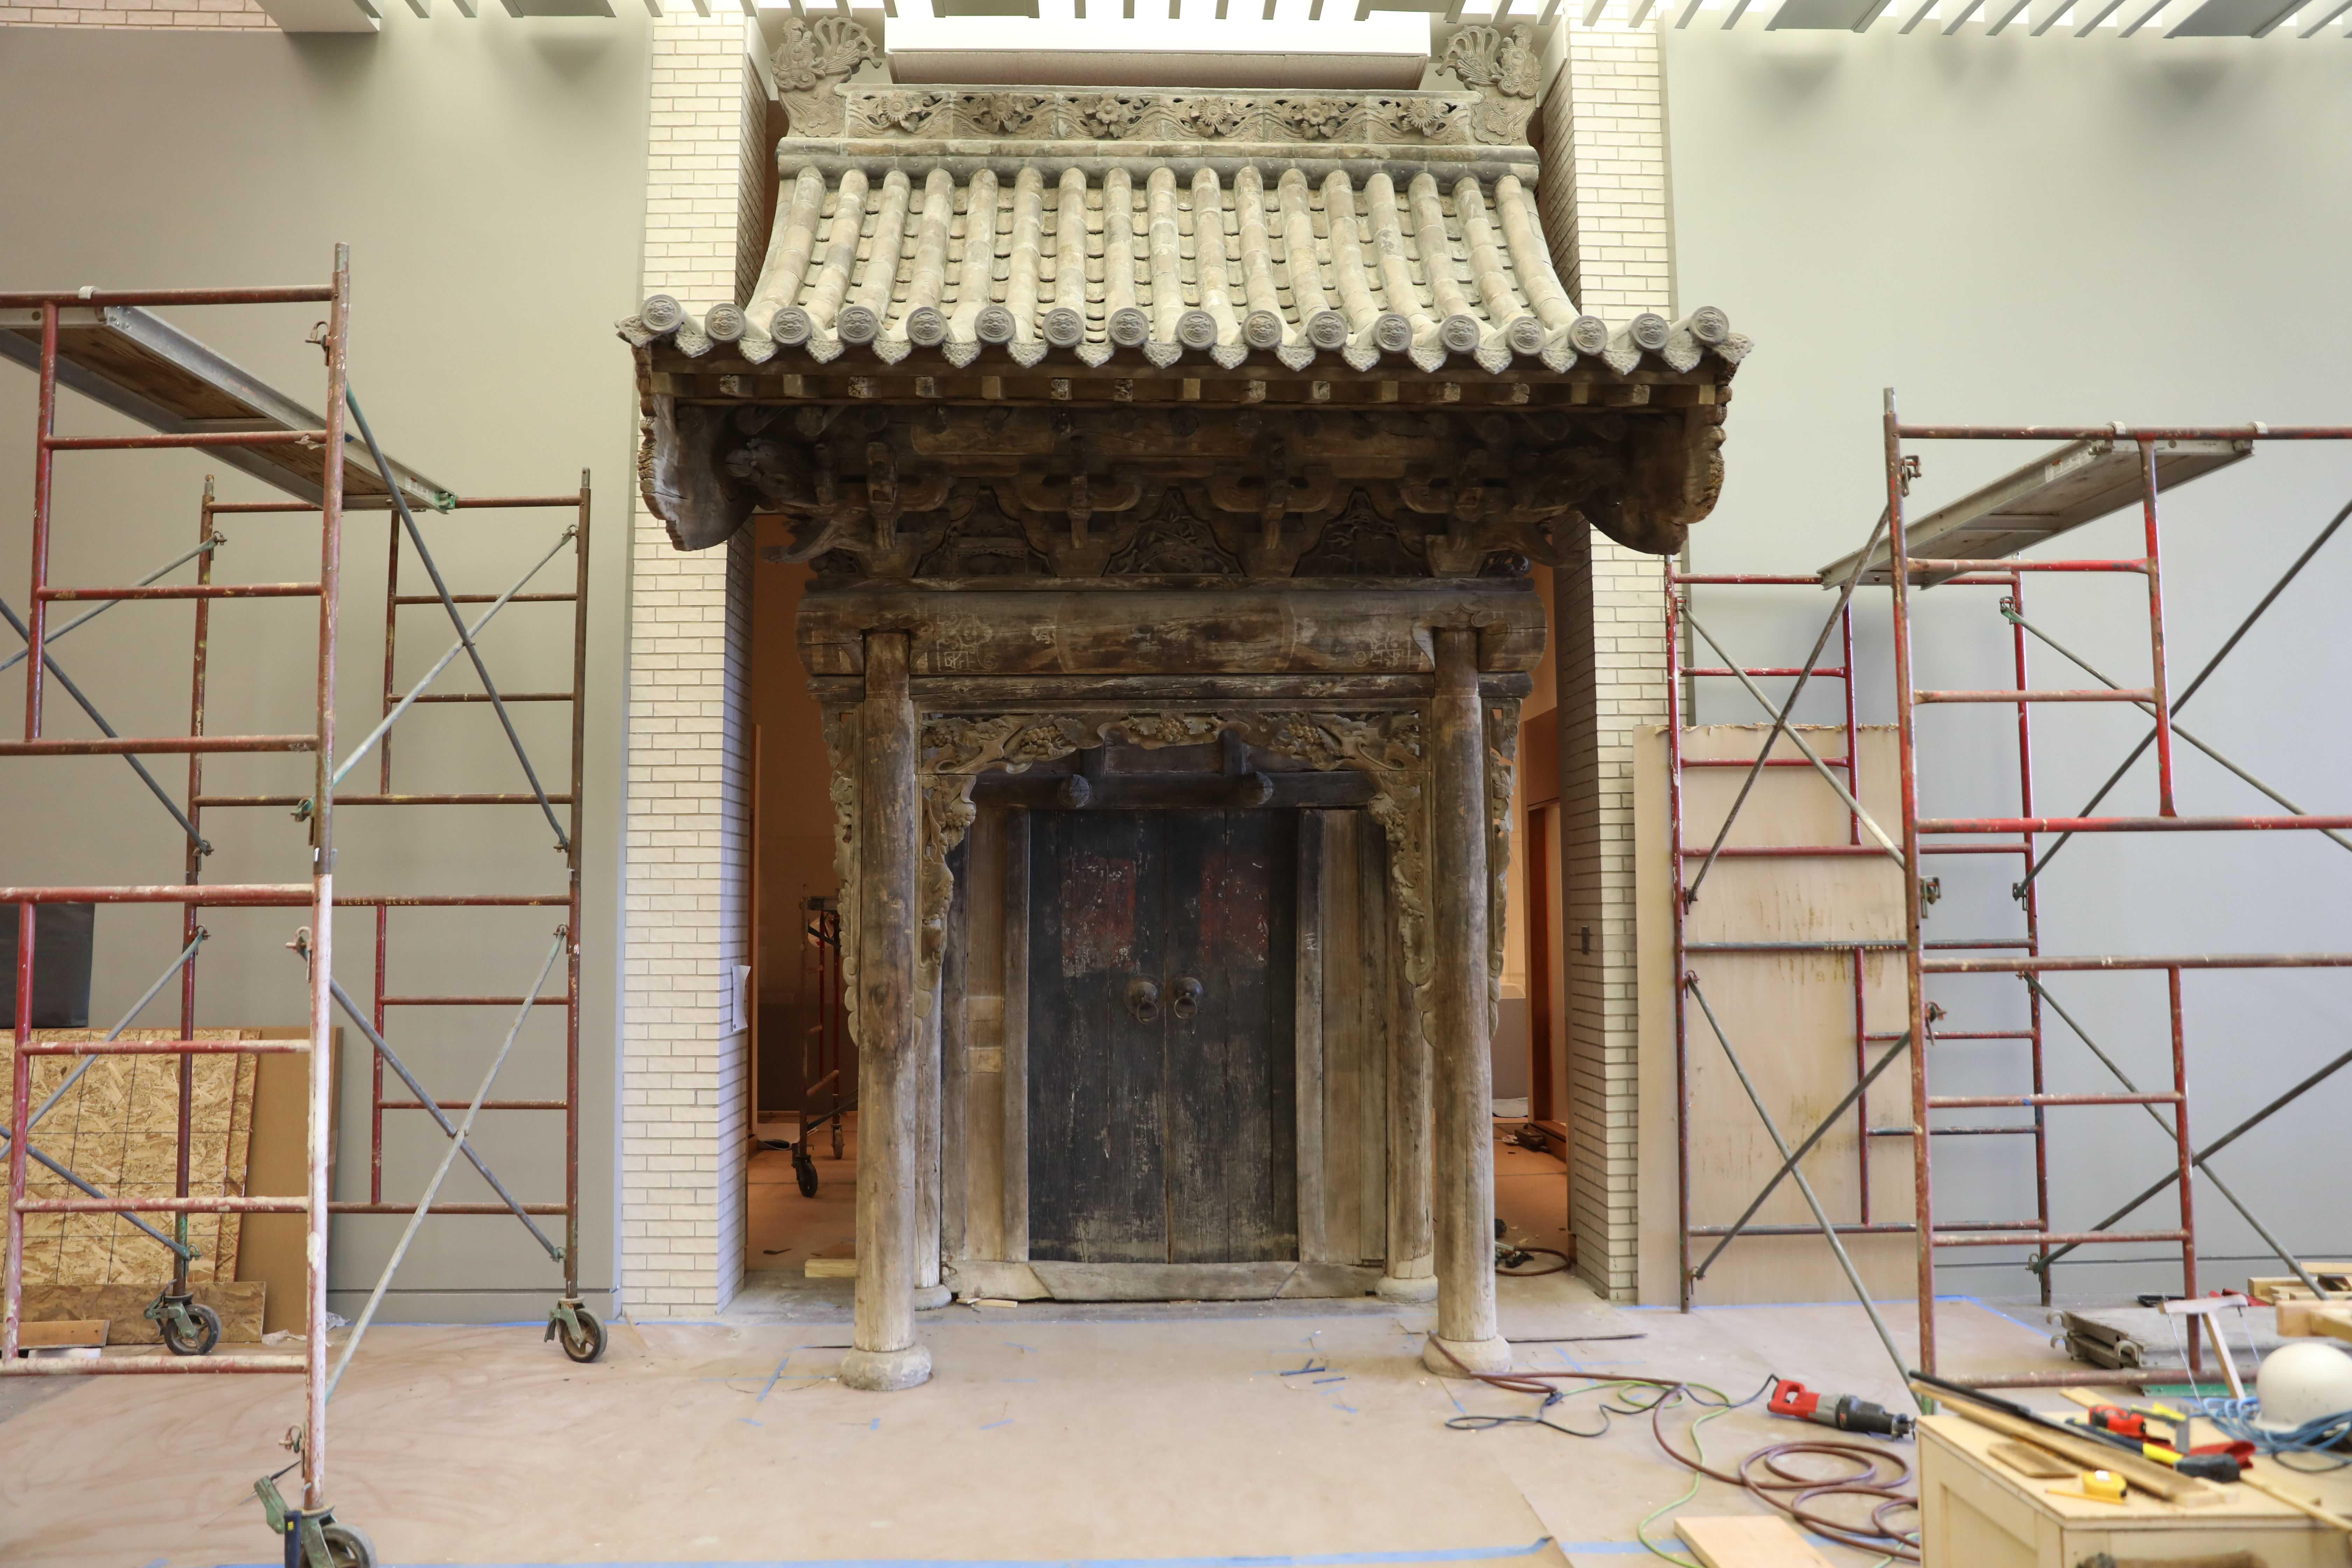 The Qing gate, reinstalled at the second-floor entrance to Mia's Chinese galleries from the Buddhist sculpture court.